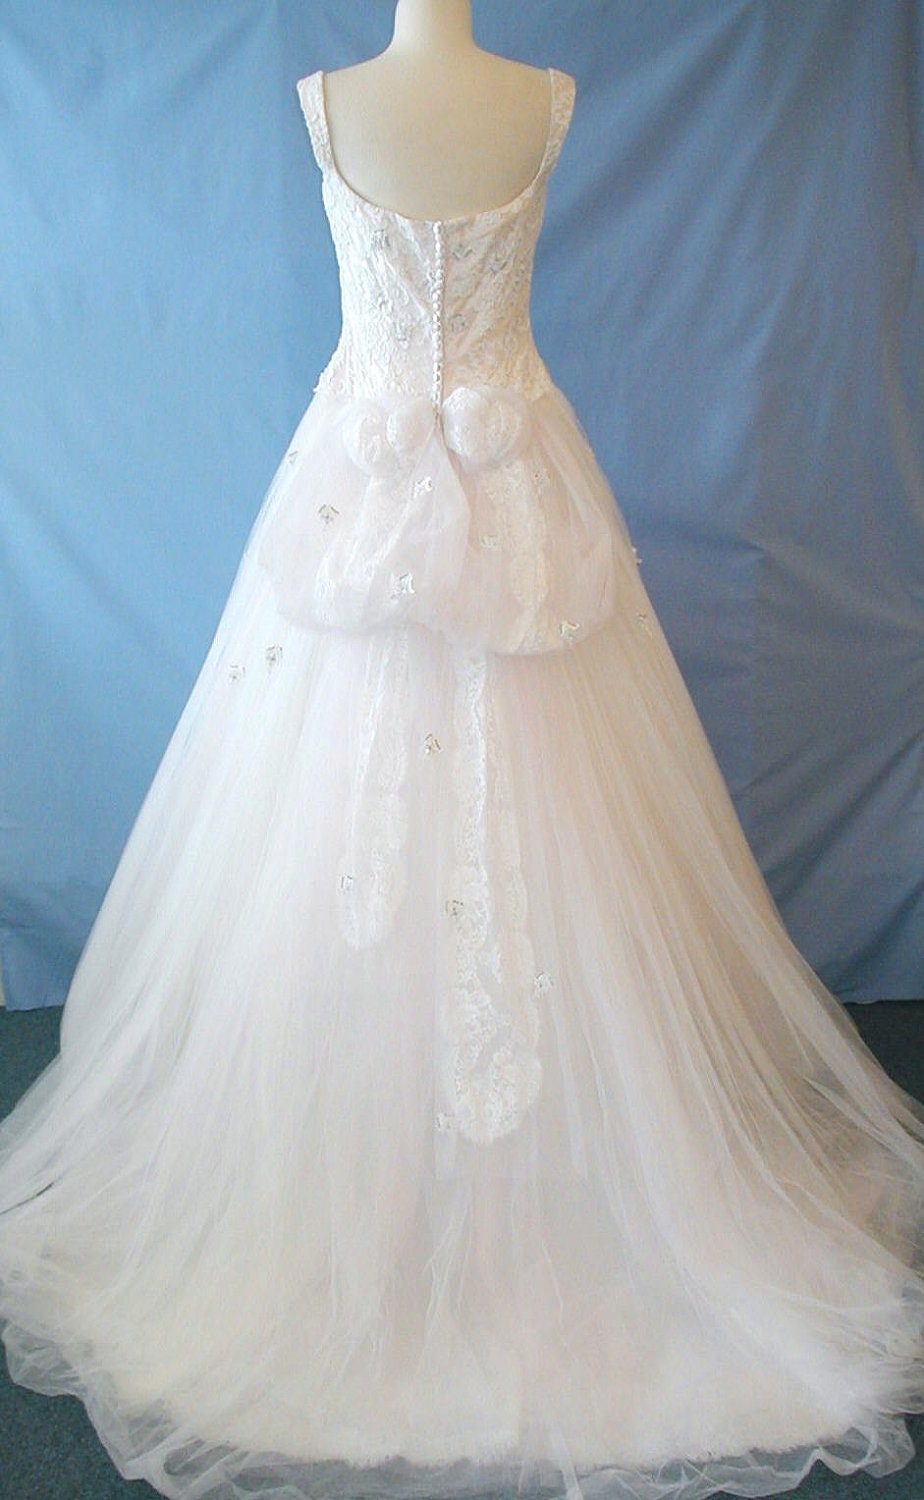 A Truly EXQUISITE pastel pink Givenchy wedding dress